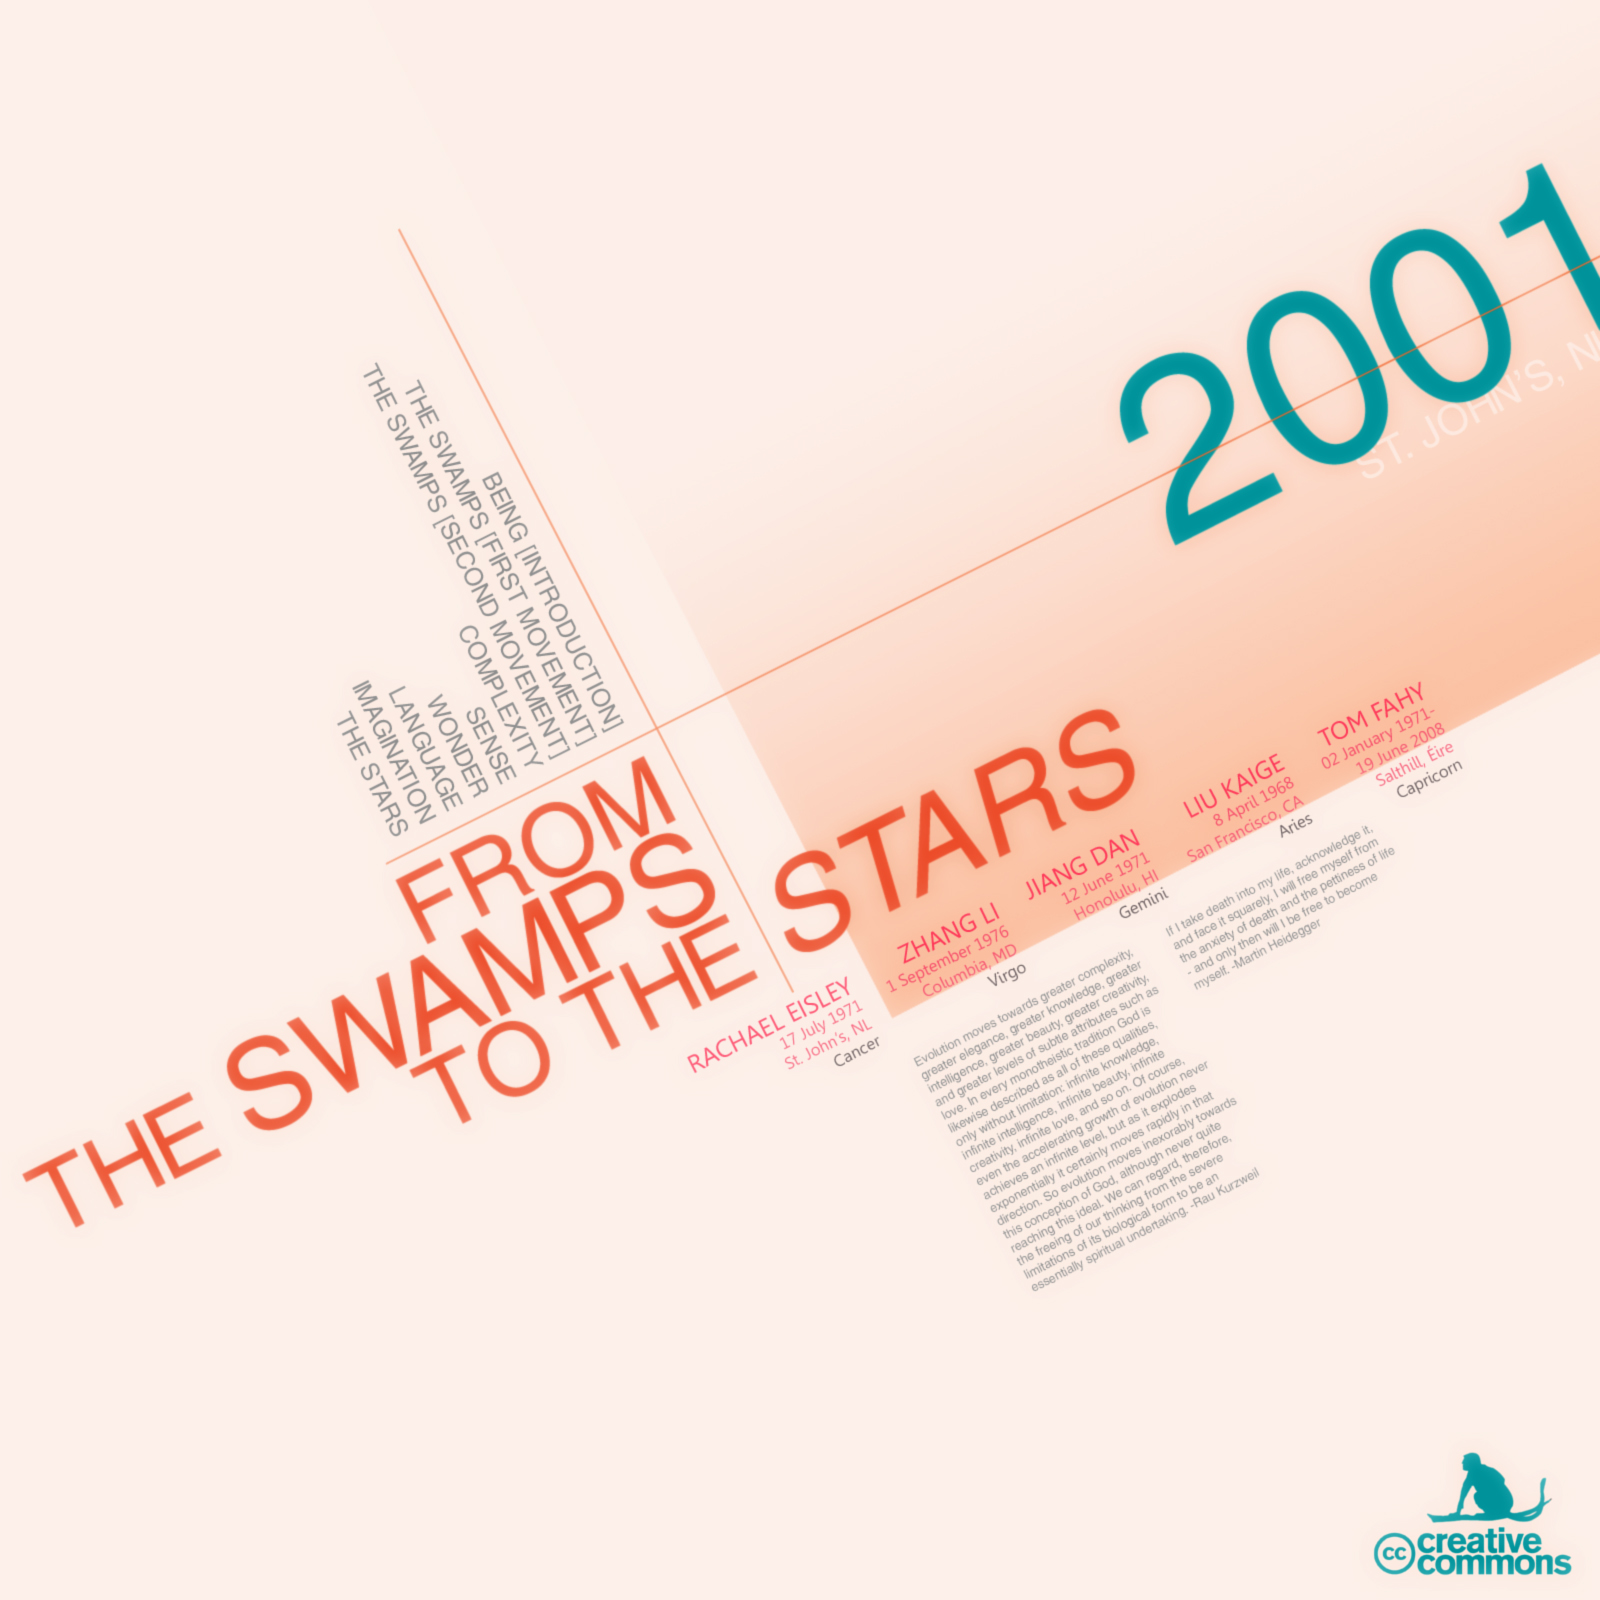 From the Swamps to the Stars, by Tom Fahy